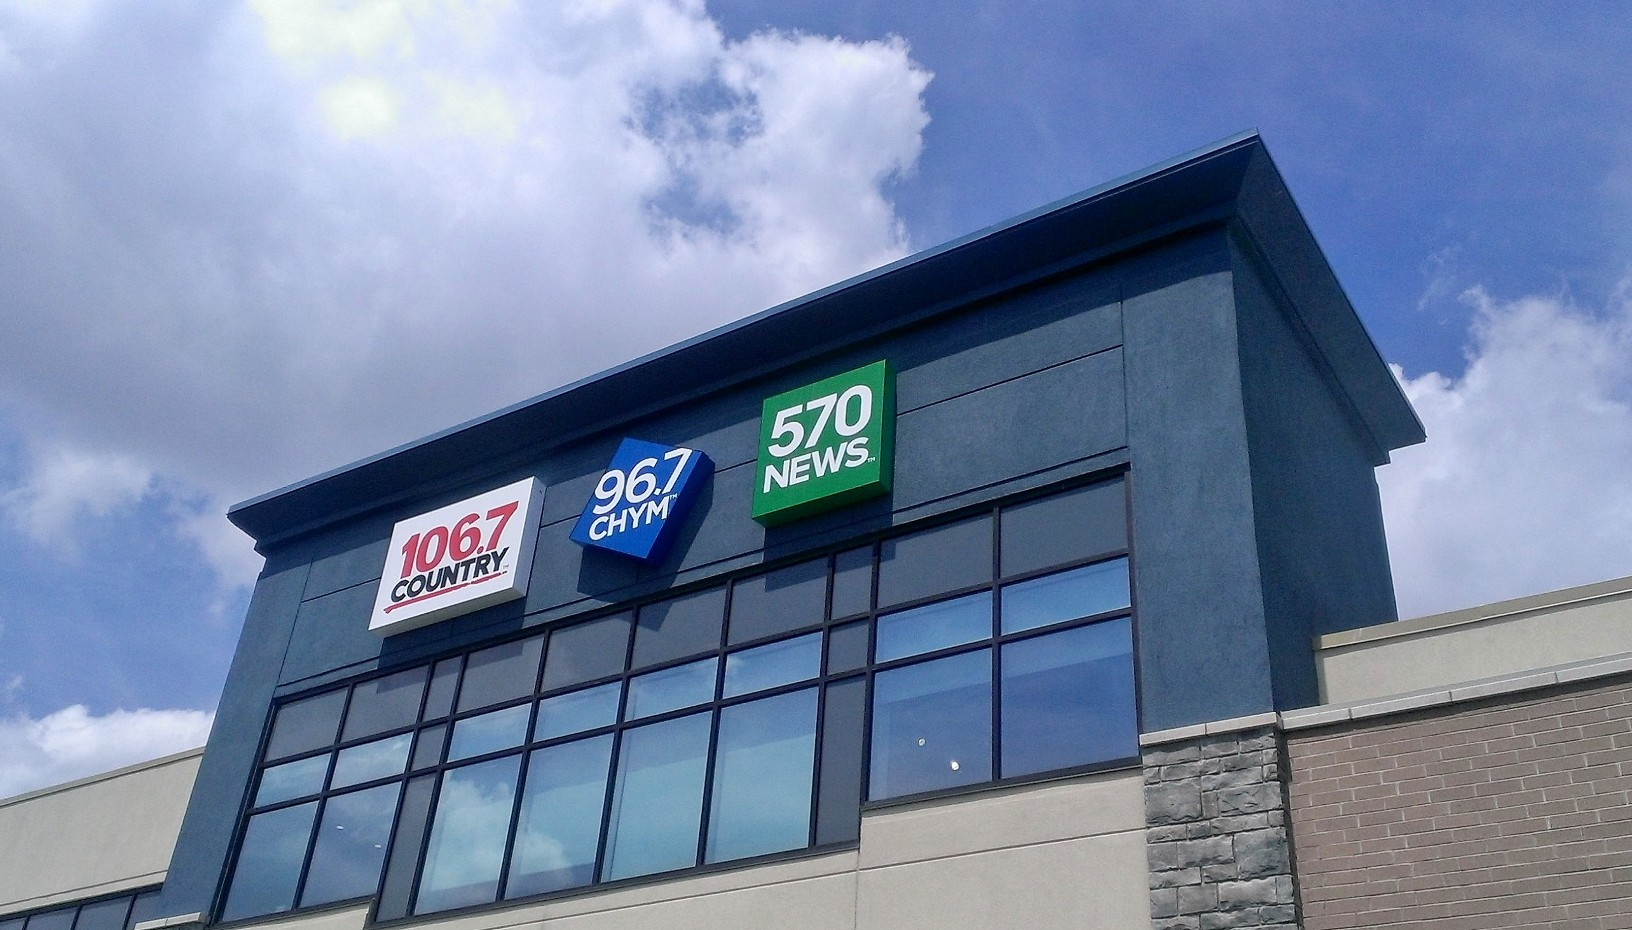 PHOTOS: New home of the Rogers Kitchener Radio Group - 570 NEWS